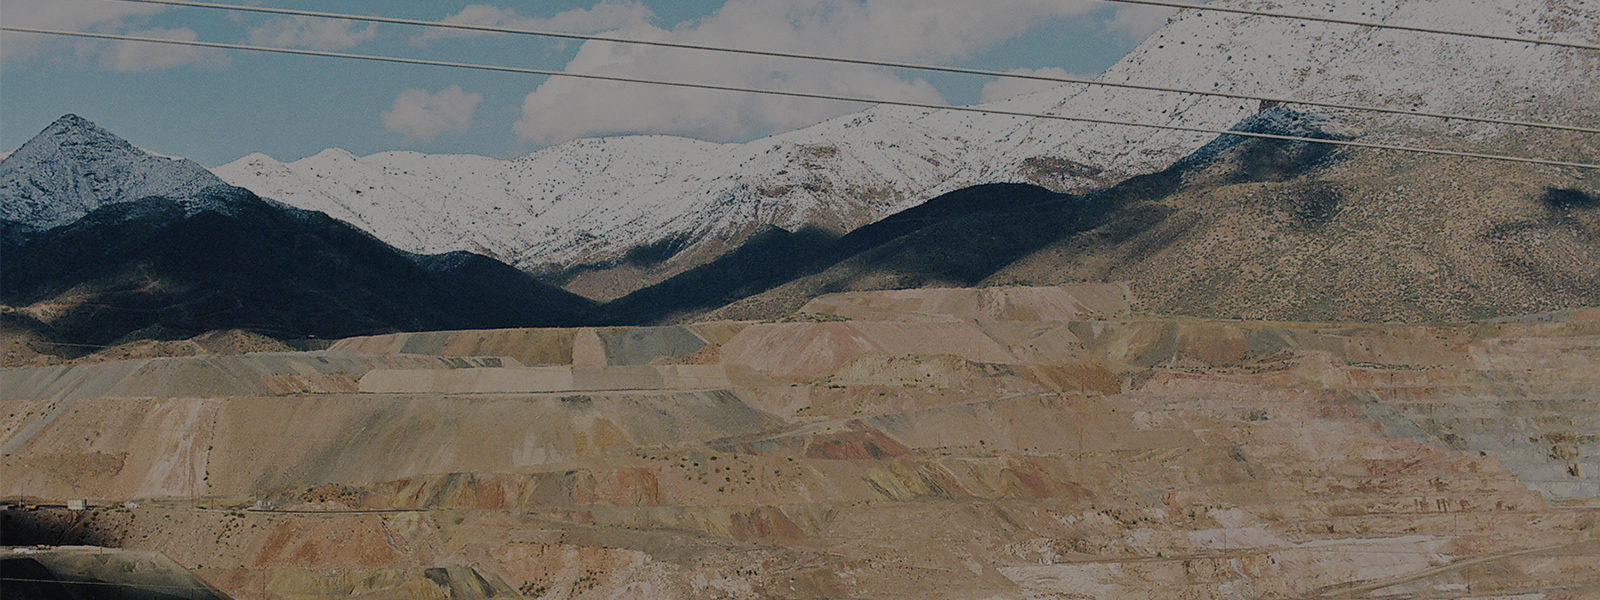 Copper Mining | Copper oxide mines | RMG Limited